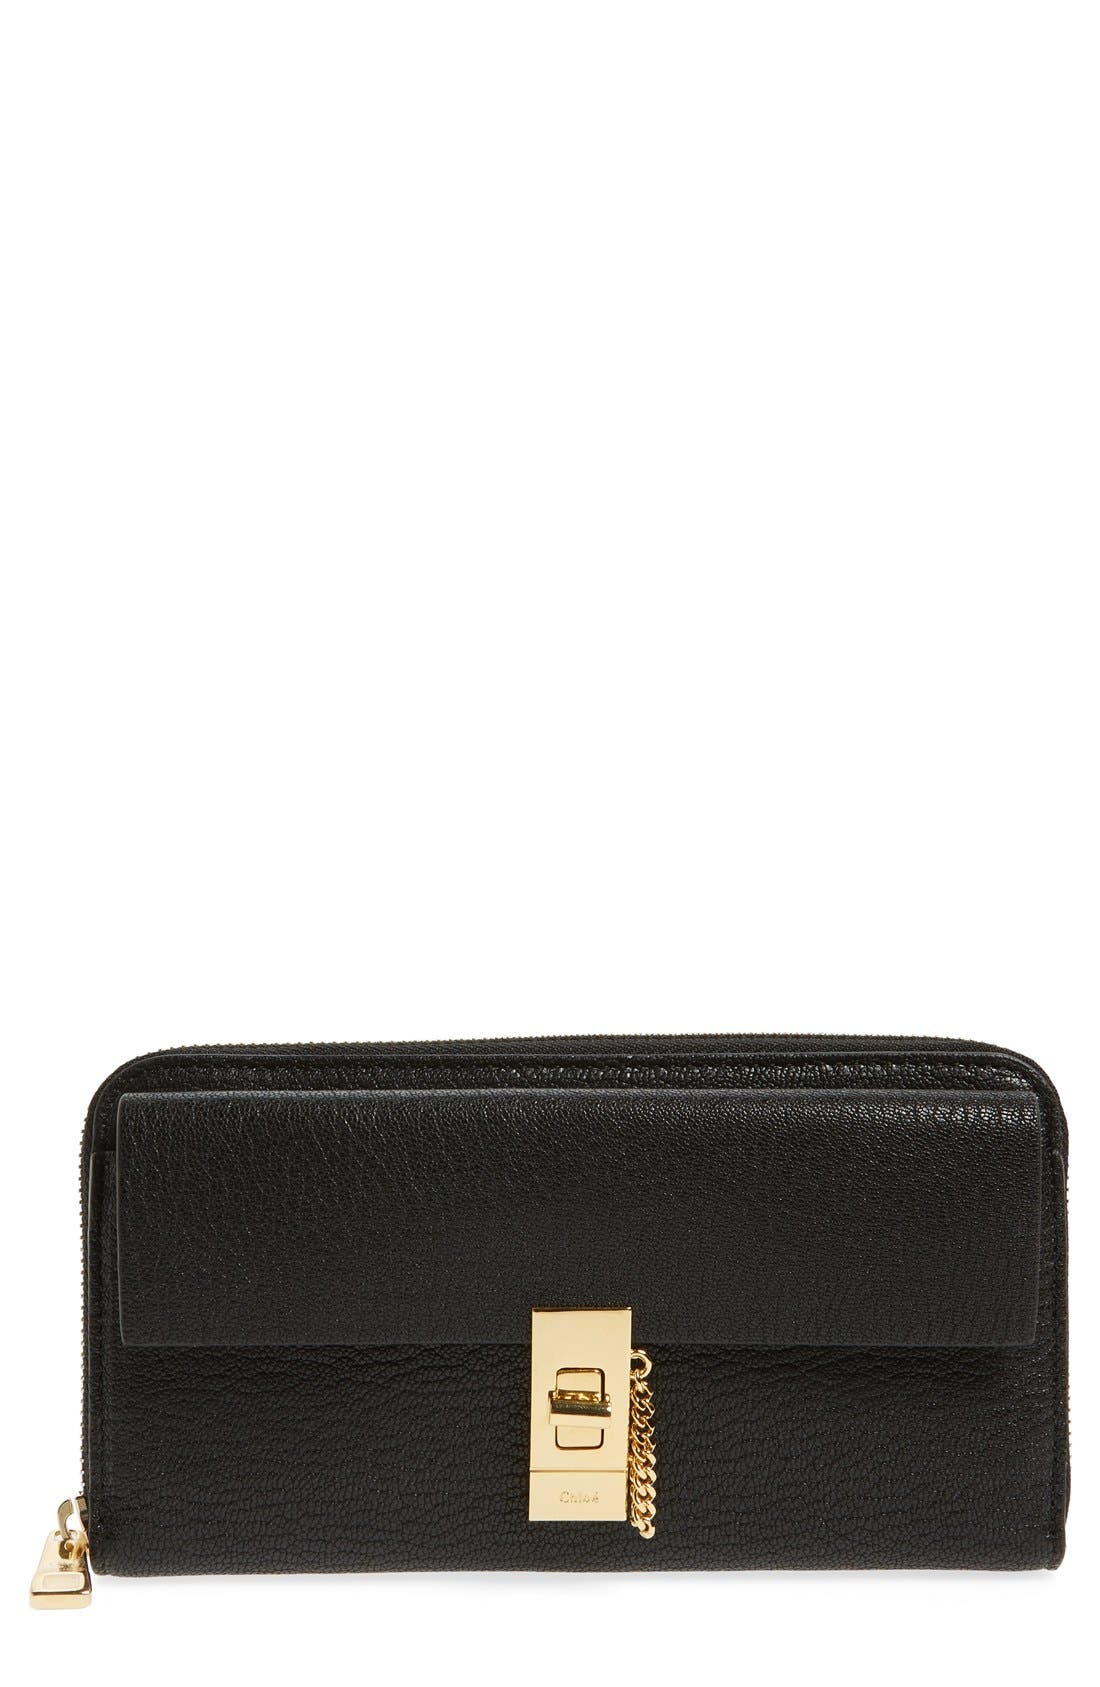 Chloé 'Drew' Calfskin Leather Zip Around Wallet